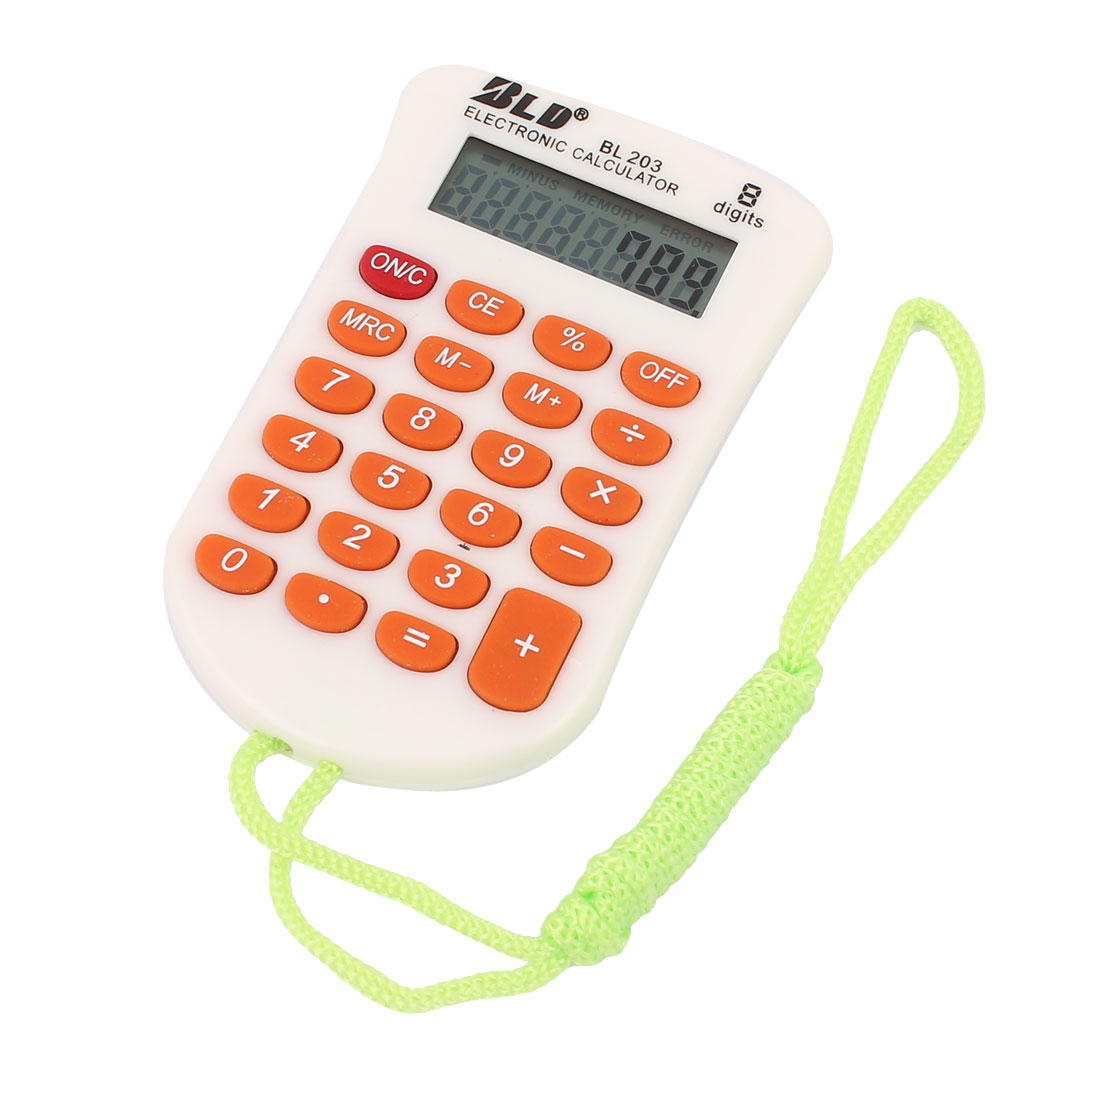 Office Plastic LCD Display 8 Digits Soft Rubber Keys Mini Pocket Electronic Calculator Orange White w Strap